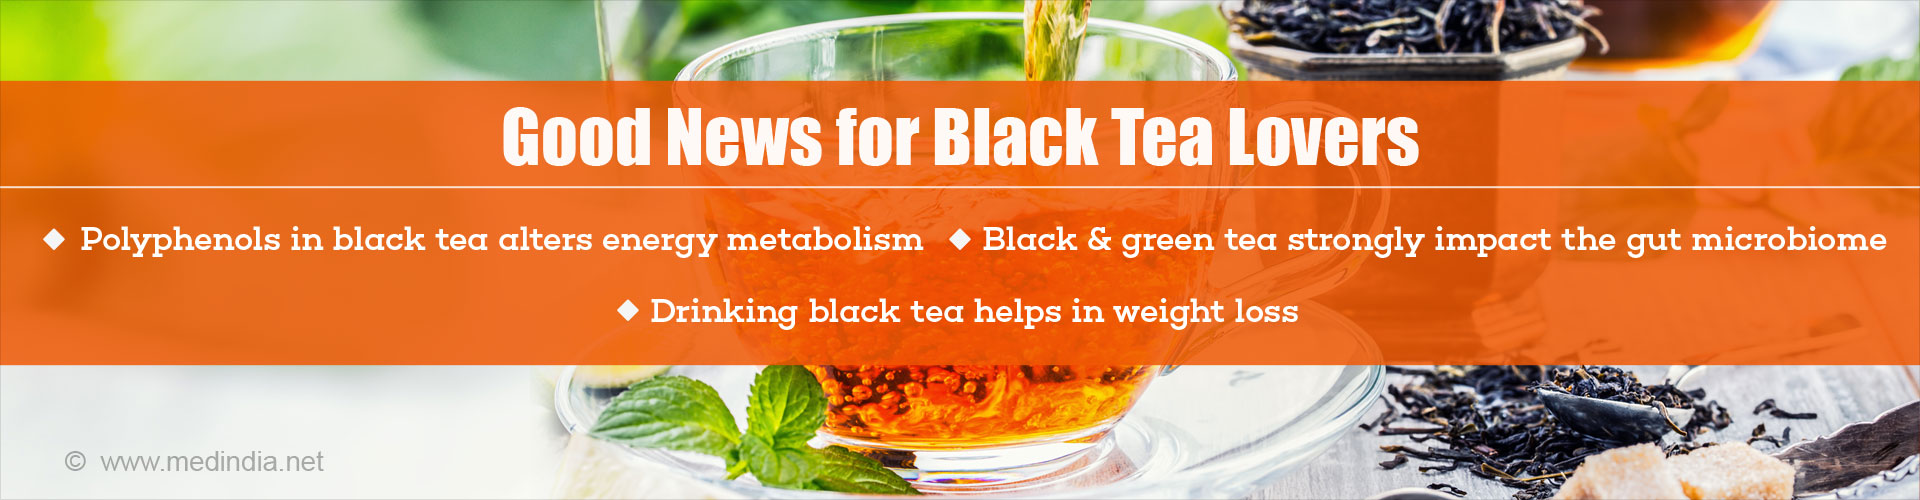 Good news for black tea lovers